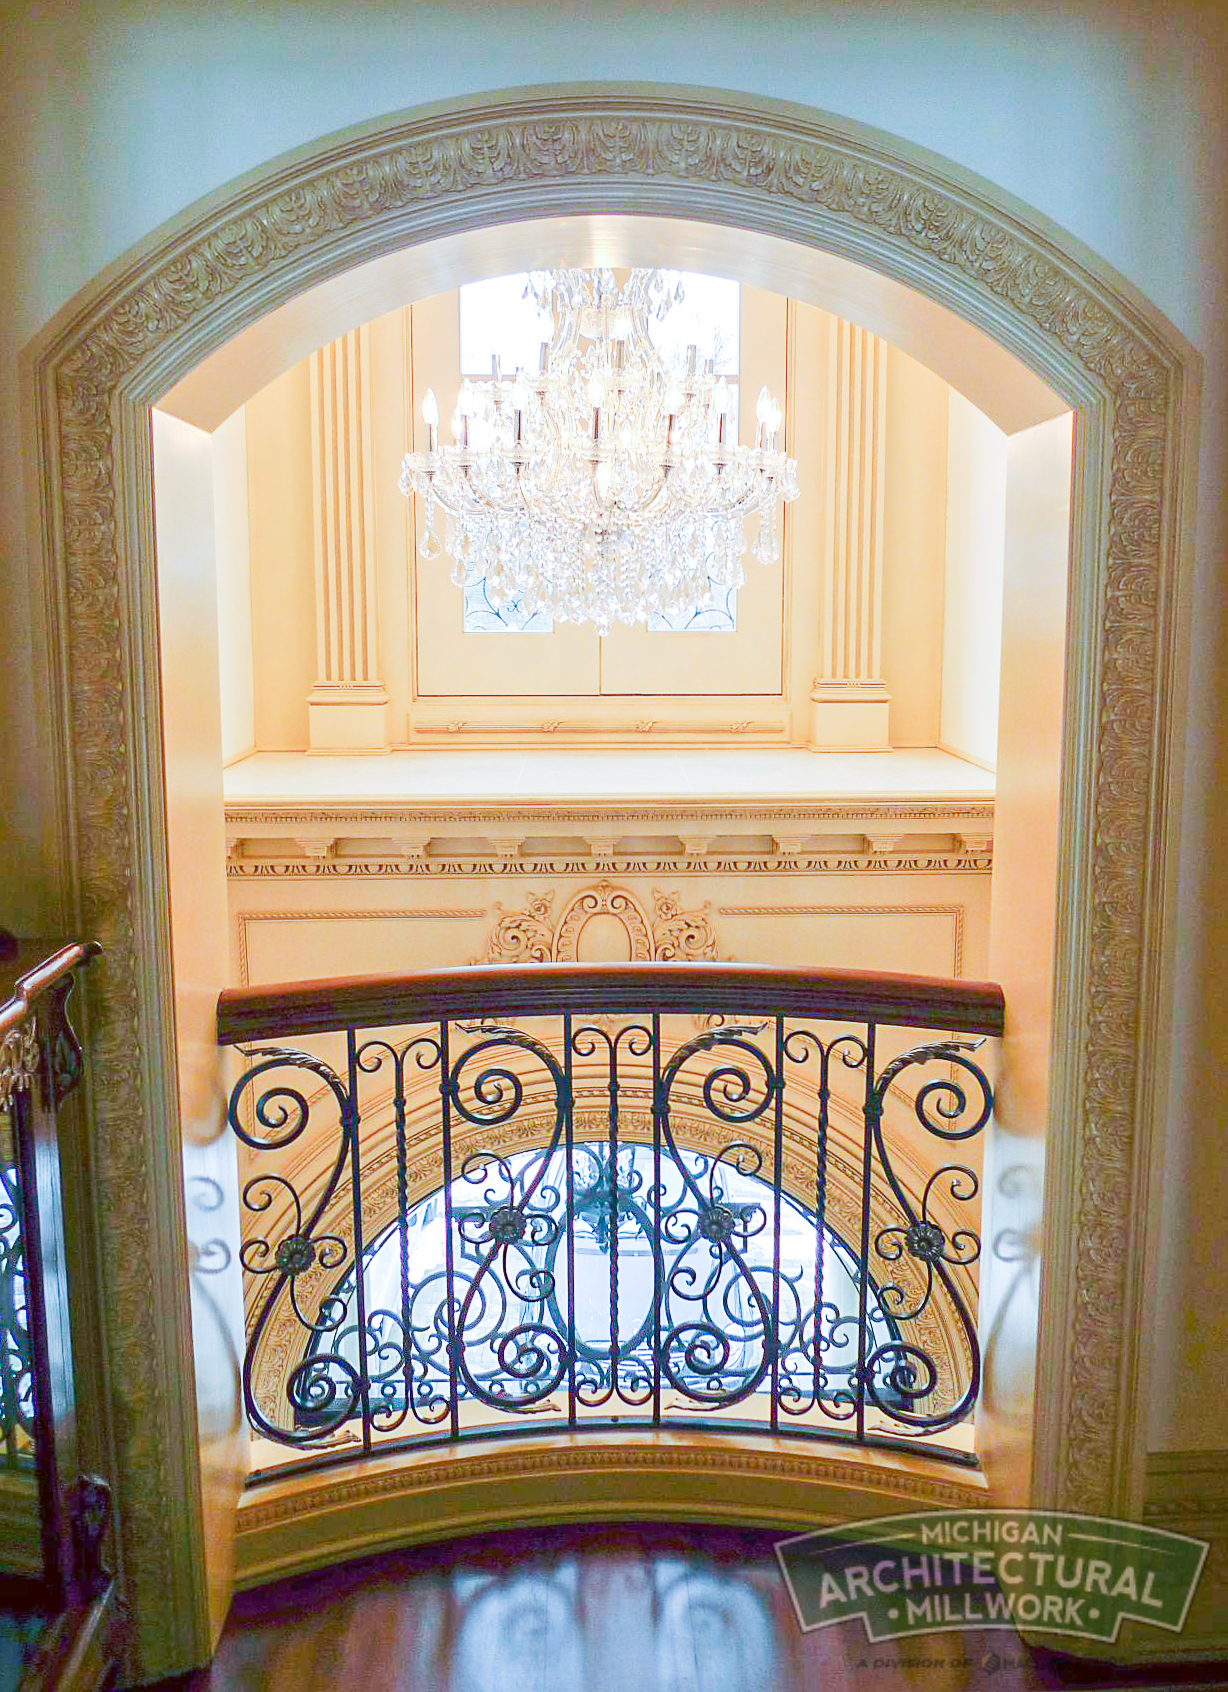 Michigan Architectural Millwork- Moulding and Millwork Photo-141.jpg